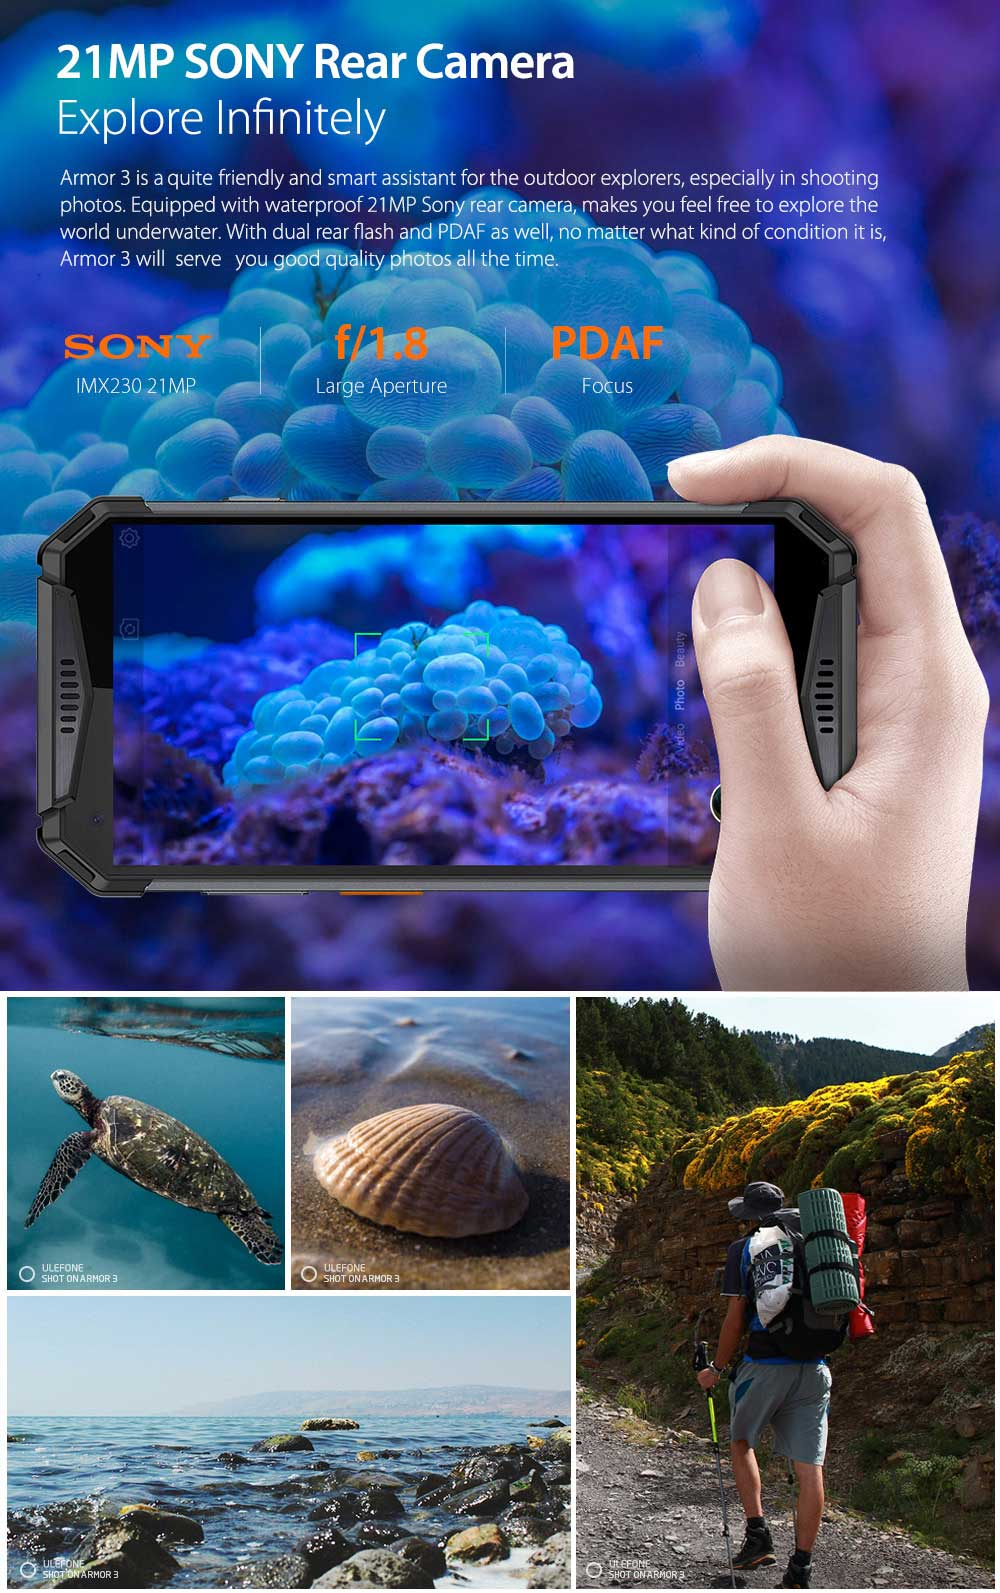 Ulefone Armor 3 4G Phablet 5.7 inch Android 8.1 Oreo Helio P23 ( MT6763T ) Octa Core 2.5GHz 4GB RAM 64GB ROM 21.0MP Rear Camera Fingerprint Sensor 10300mAh Built-in- Orange